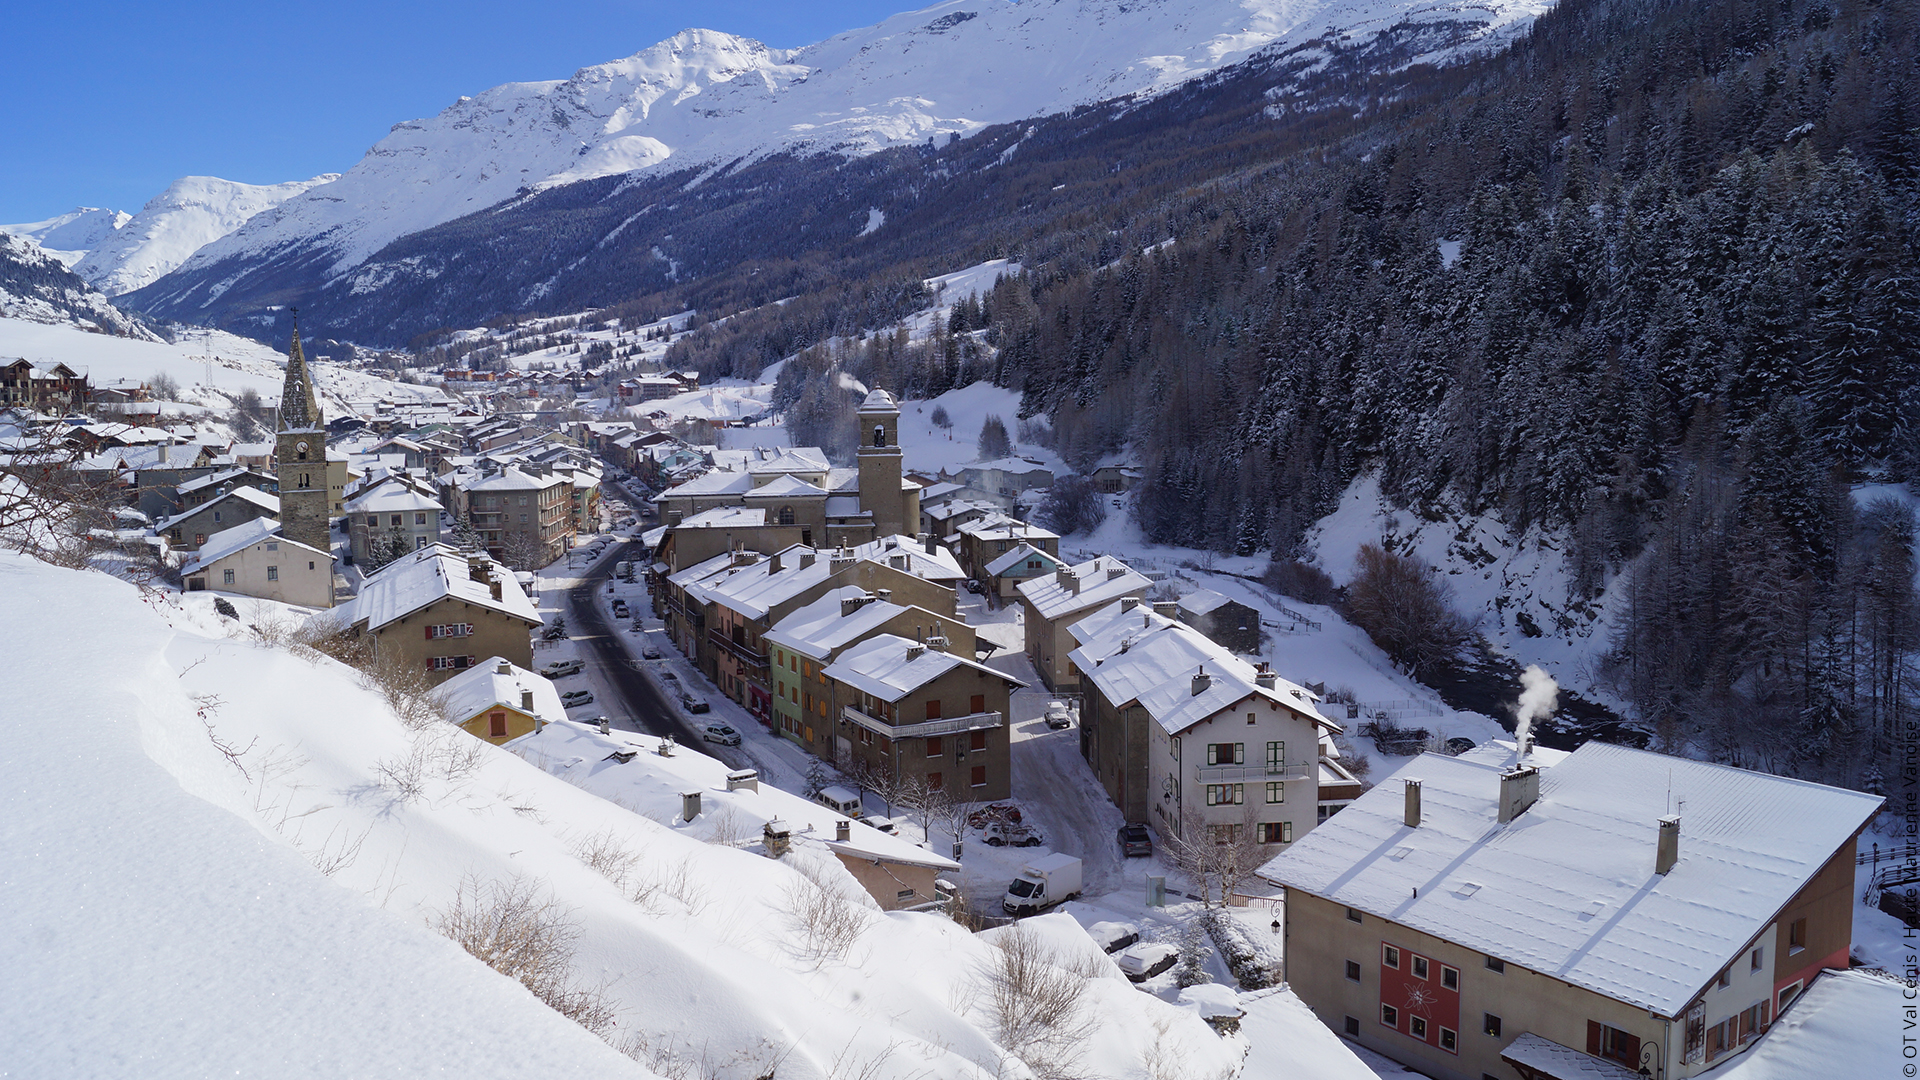 Cgh R 233 Sidences Location Appartement Ski Val Cenis Nos Locations 224 Val Cenis Cgh R 233 Sidences